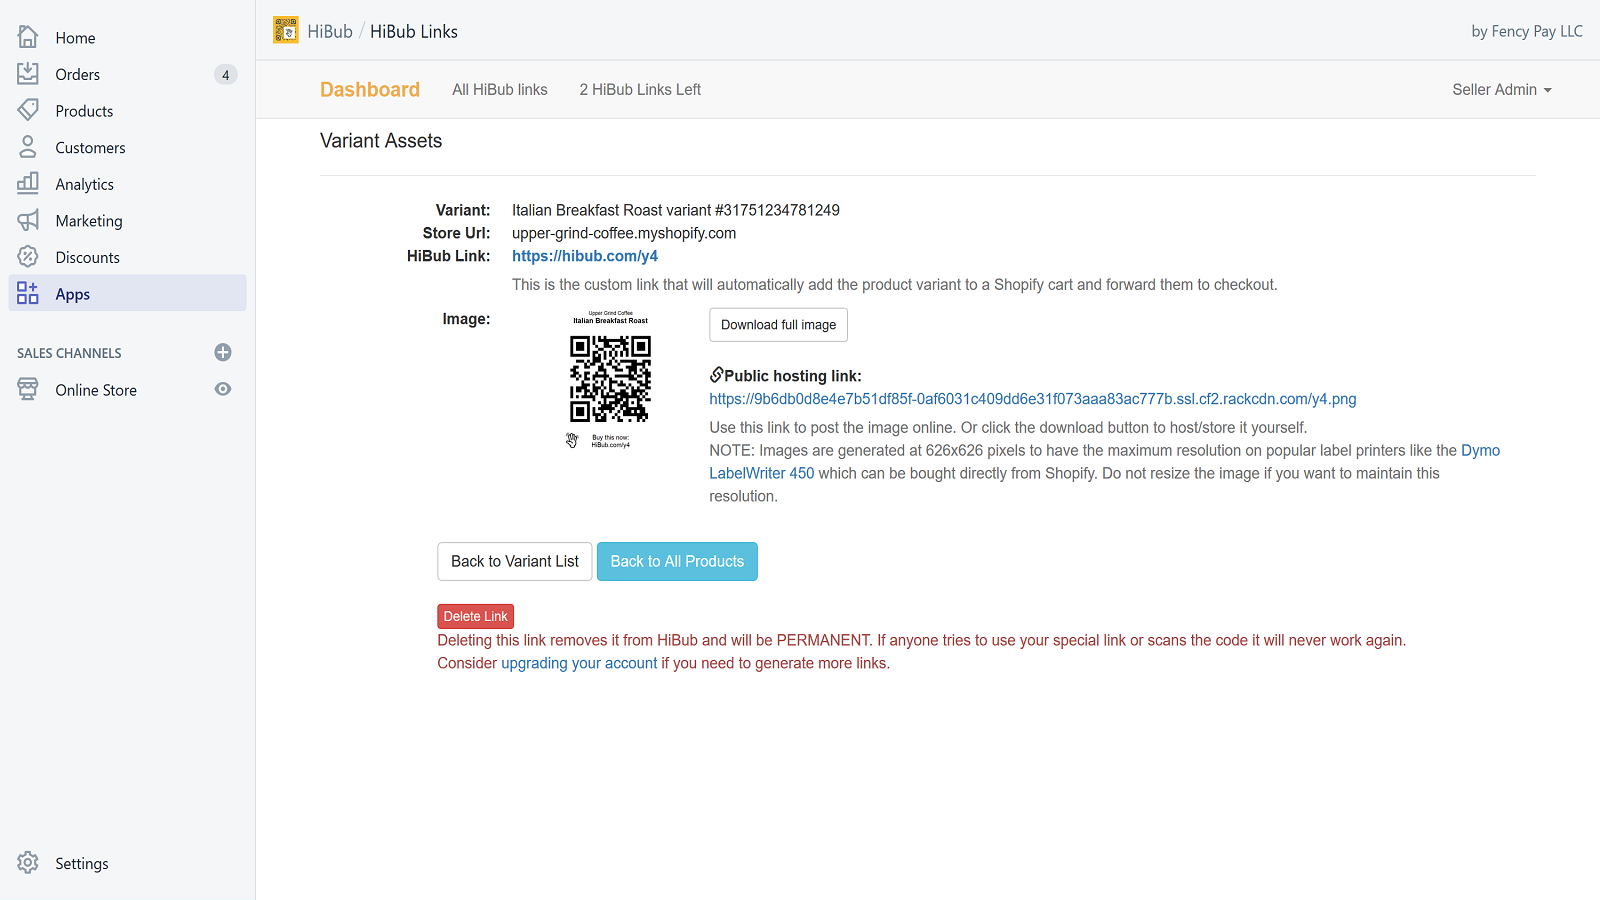 HiBub is instantly shareable with simple URLs and codes